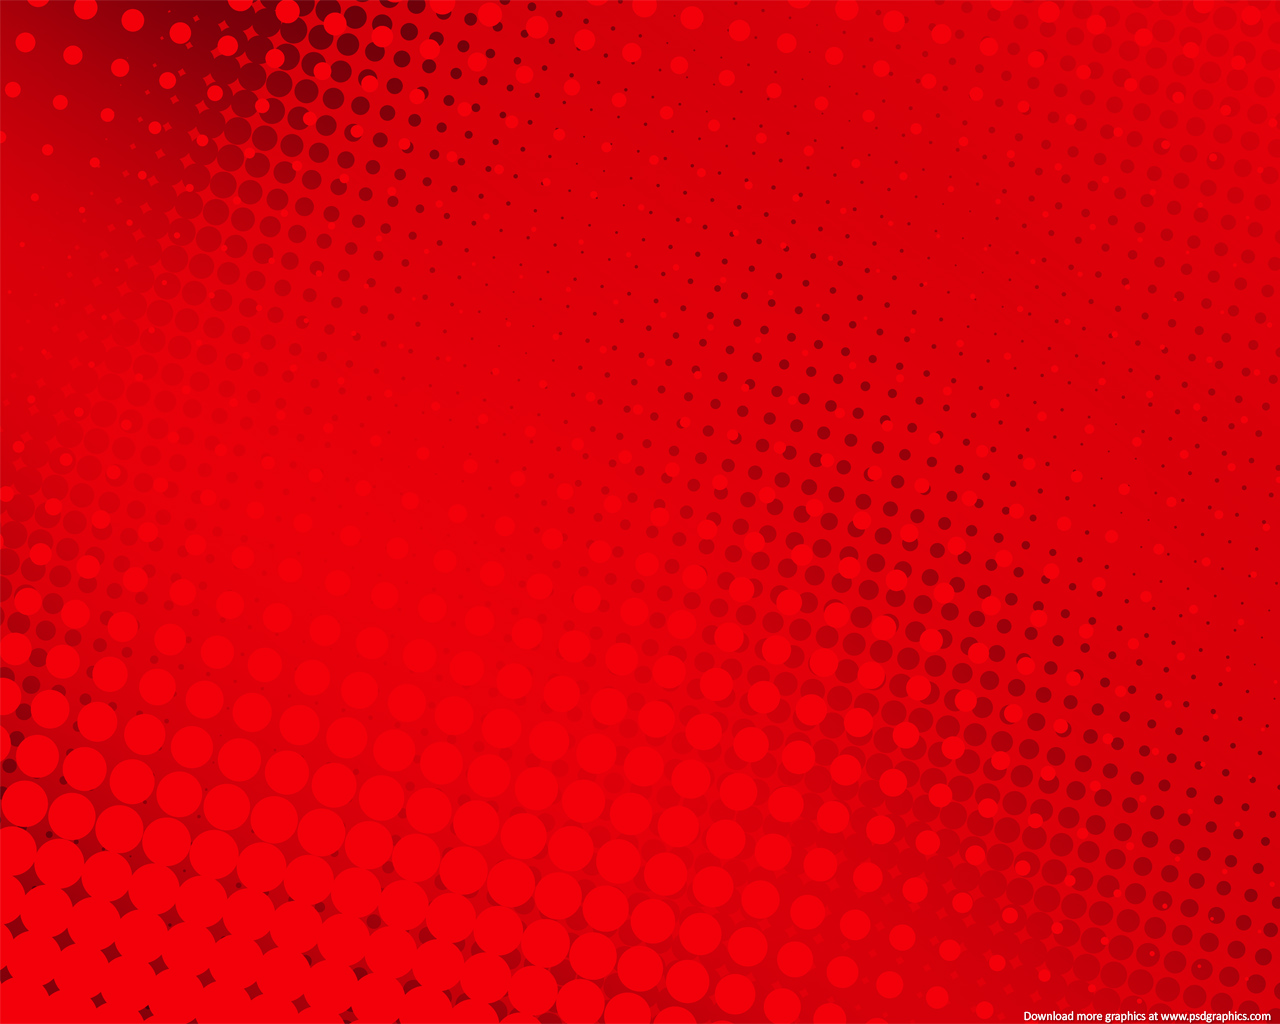 Red graphics free Red Graphic Wallpaper – Free wallpaper download free